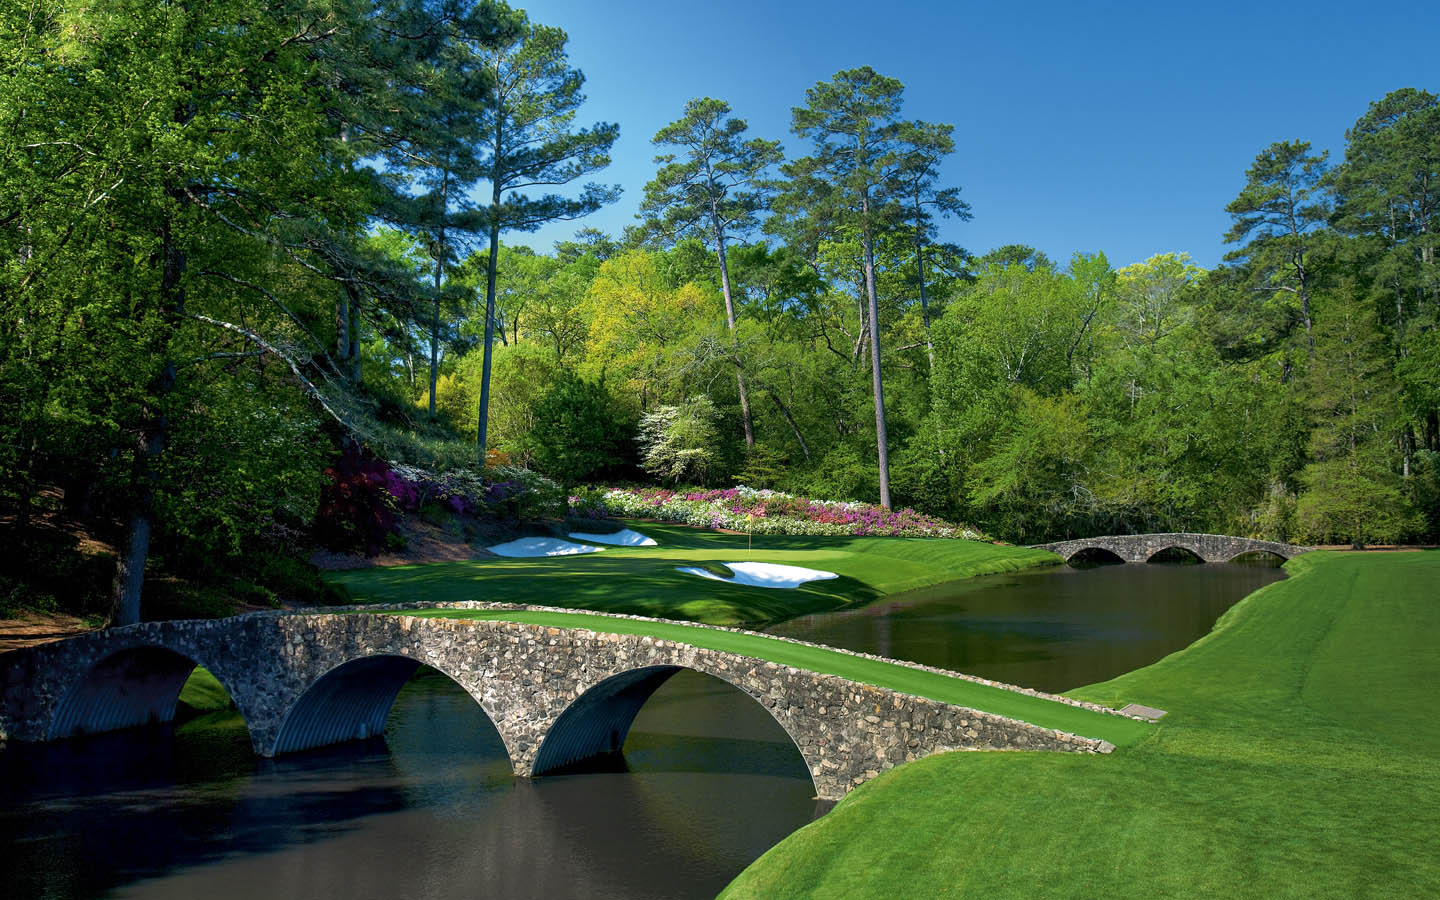 45] Augusta National Wallpaper HD on WallpaperSafari 1440x900